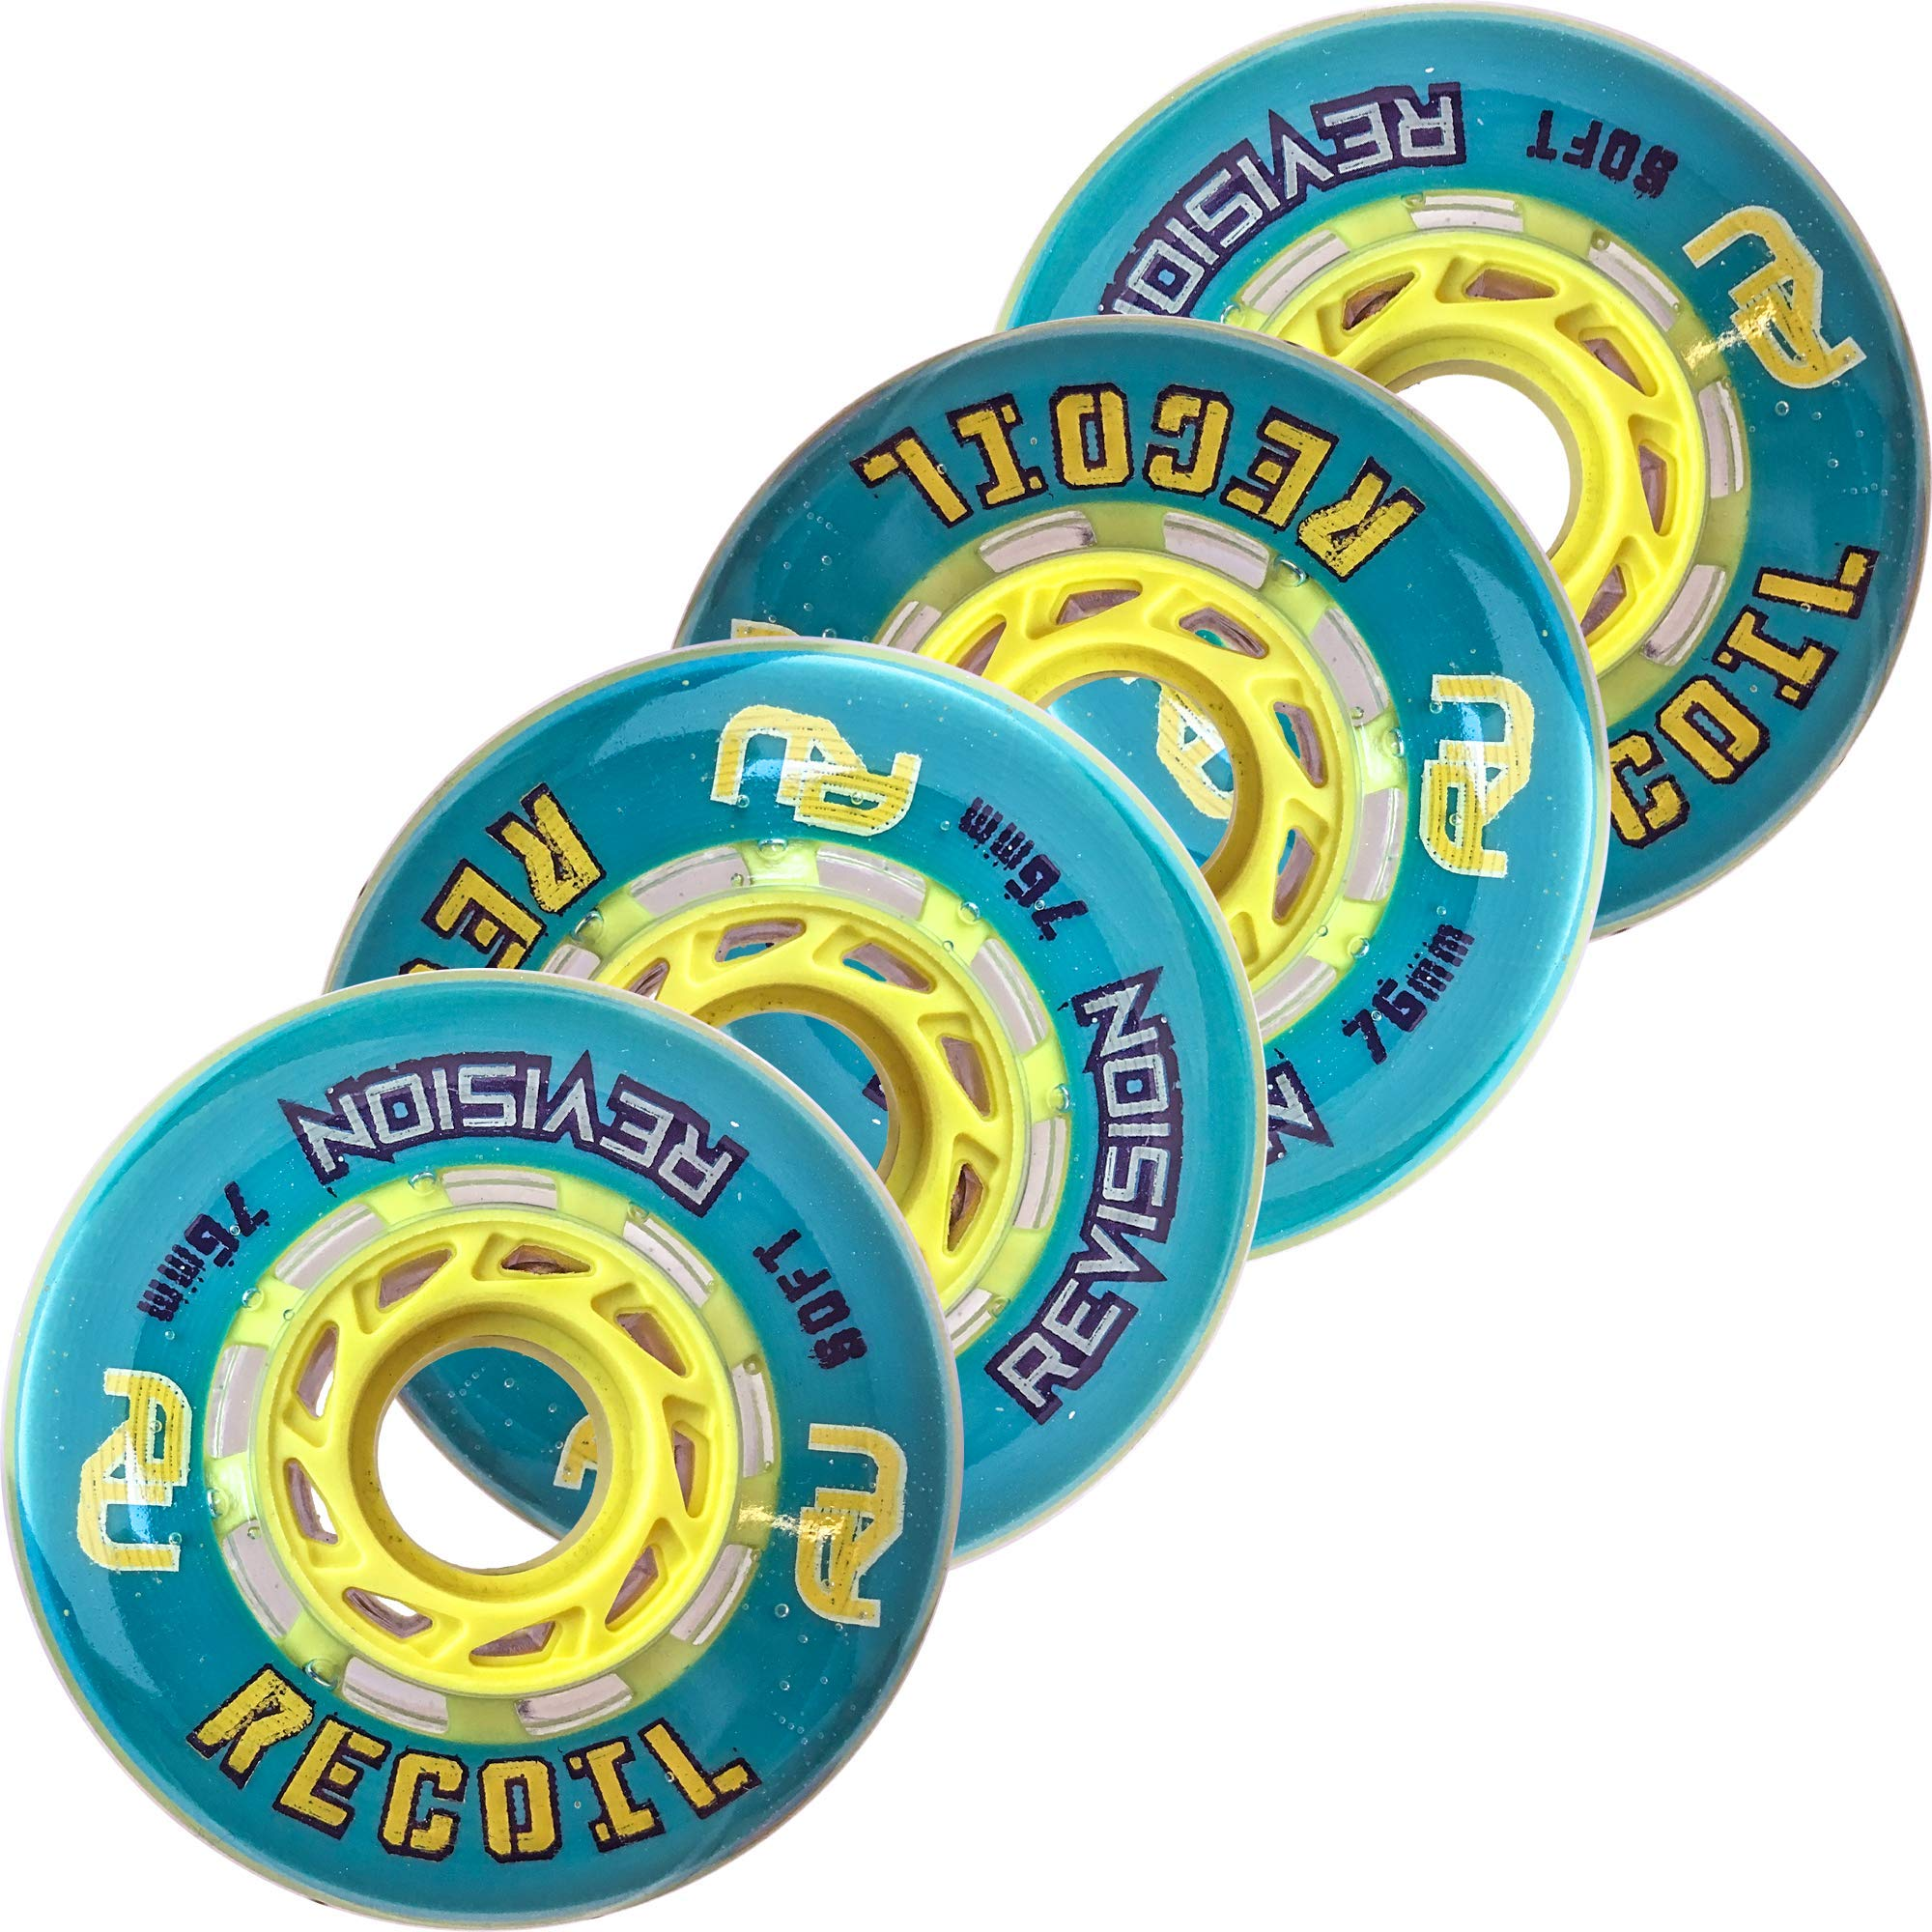 Revision Recoil Indoor Inline Roller Hockey Wheel - 74A - 76mm Soft 4 Pack- Teal & Yellow by Revision Hockey